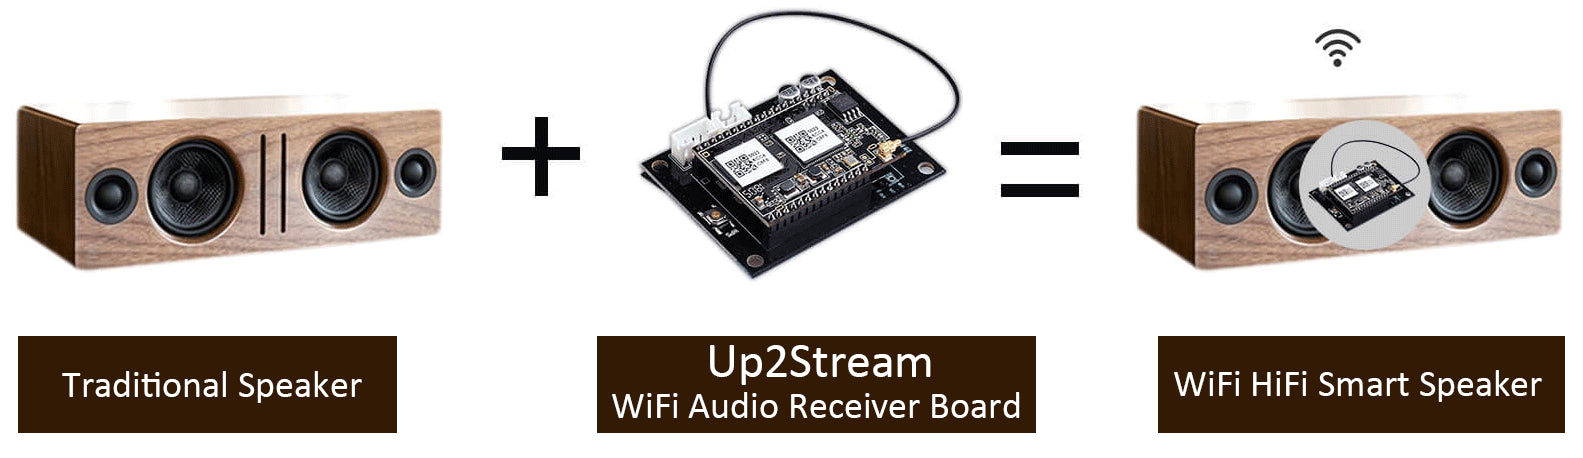 WiFi Audio Receiver Module